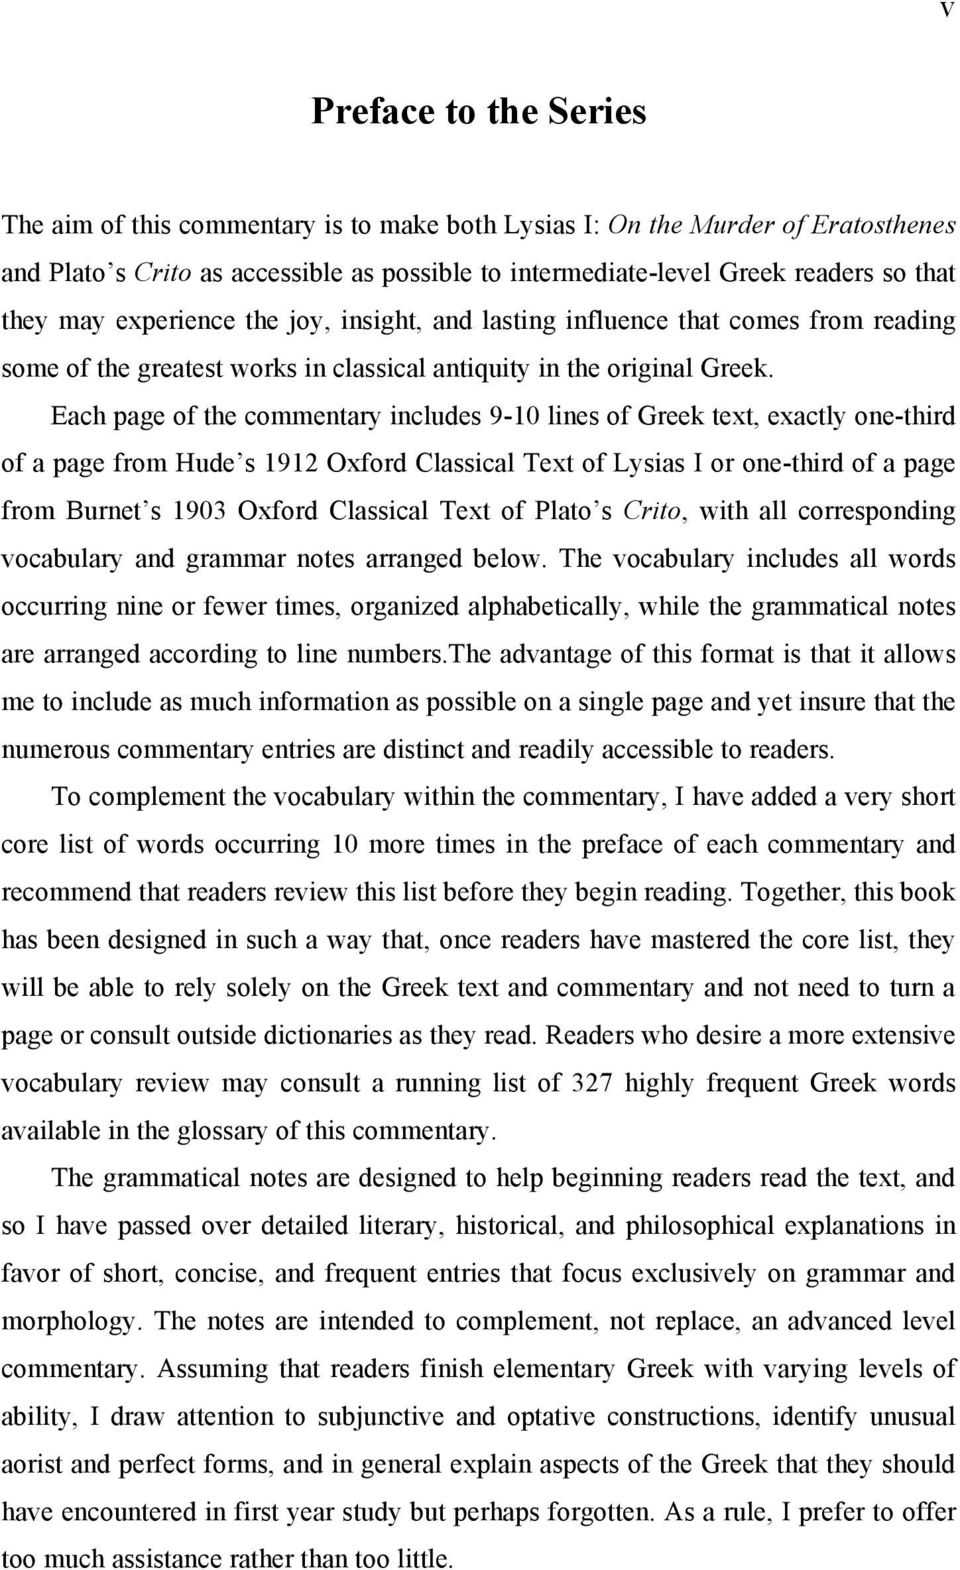 Each page of the commentary includes 9-10 lines of Greek text, exactly one-third of a page from Hude s 1912 Oxford Classical Text of Lysias I or one-third of a page from Burnet s 1903 Oxford